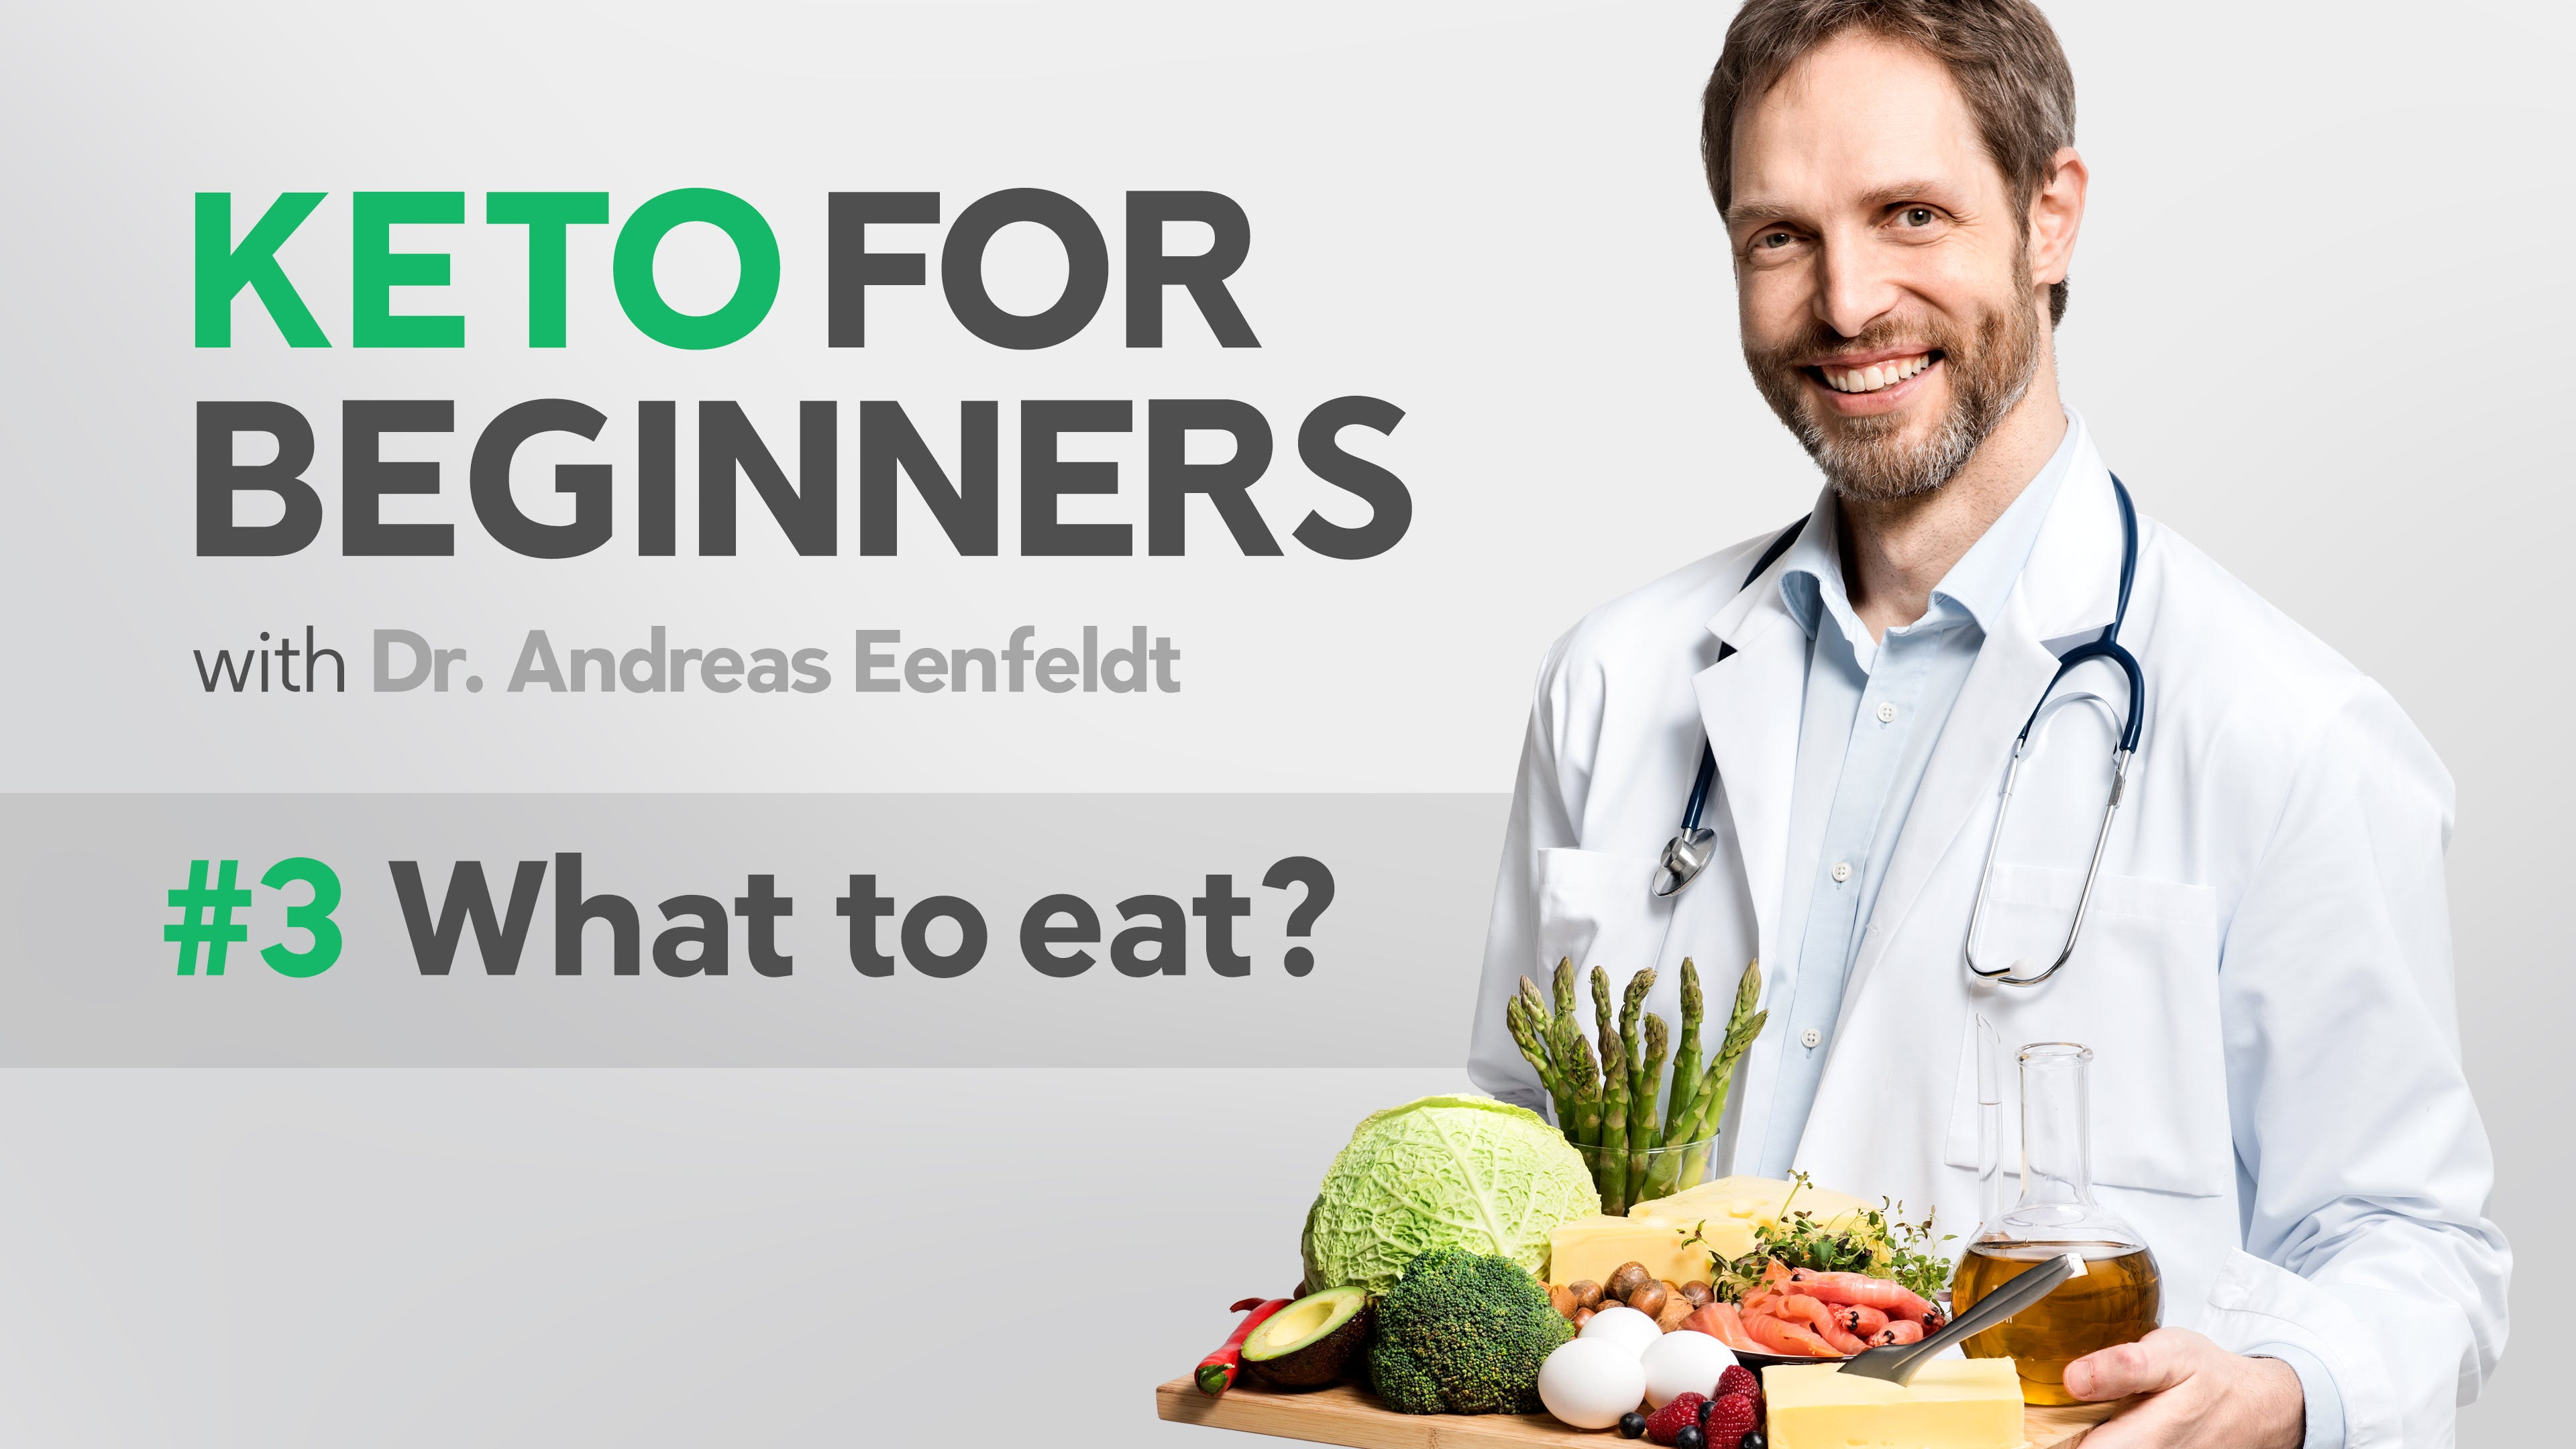 What to eat on a keto diet? New episode of the keto course